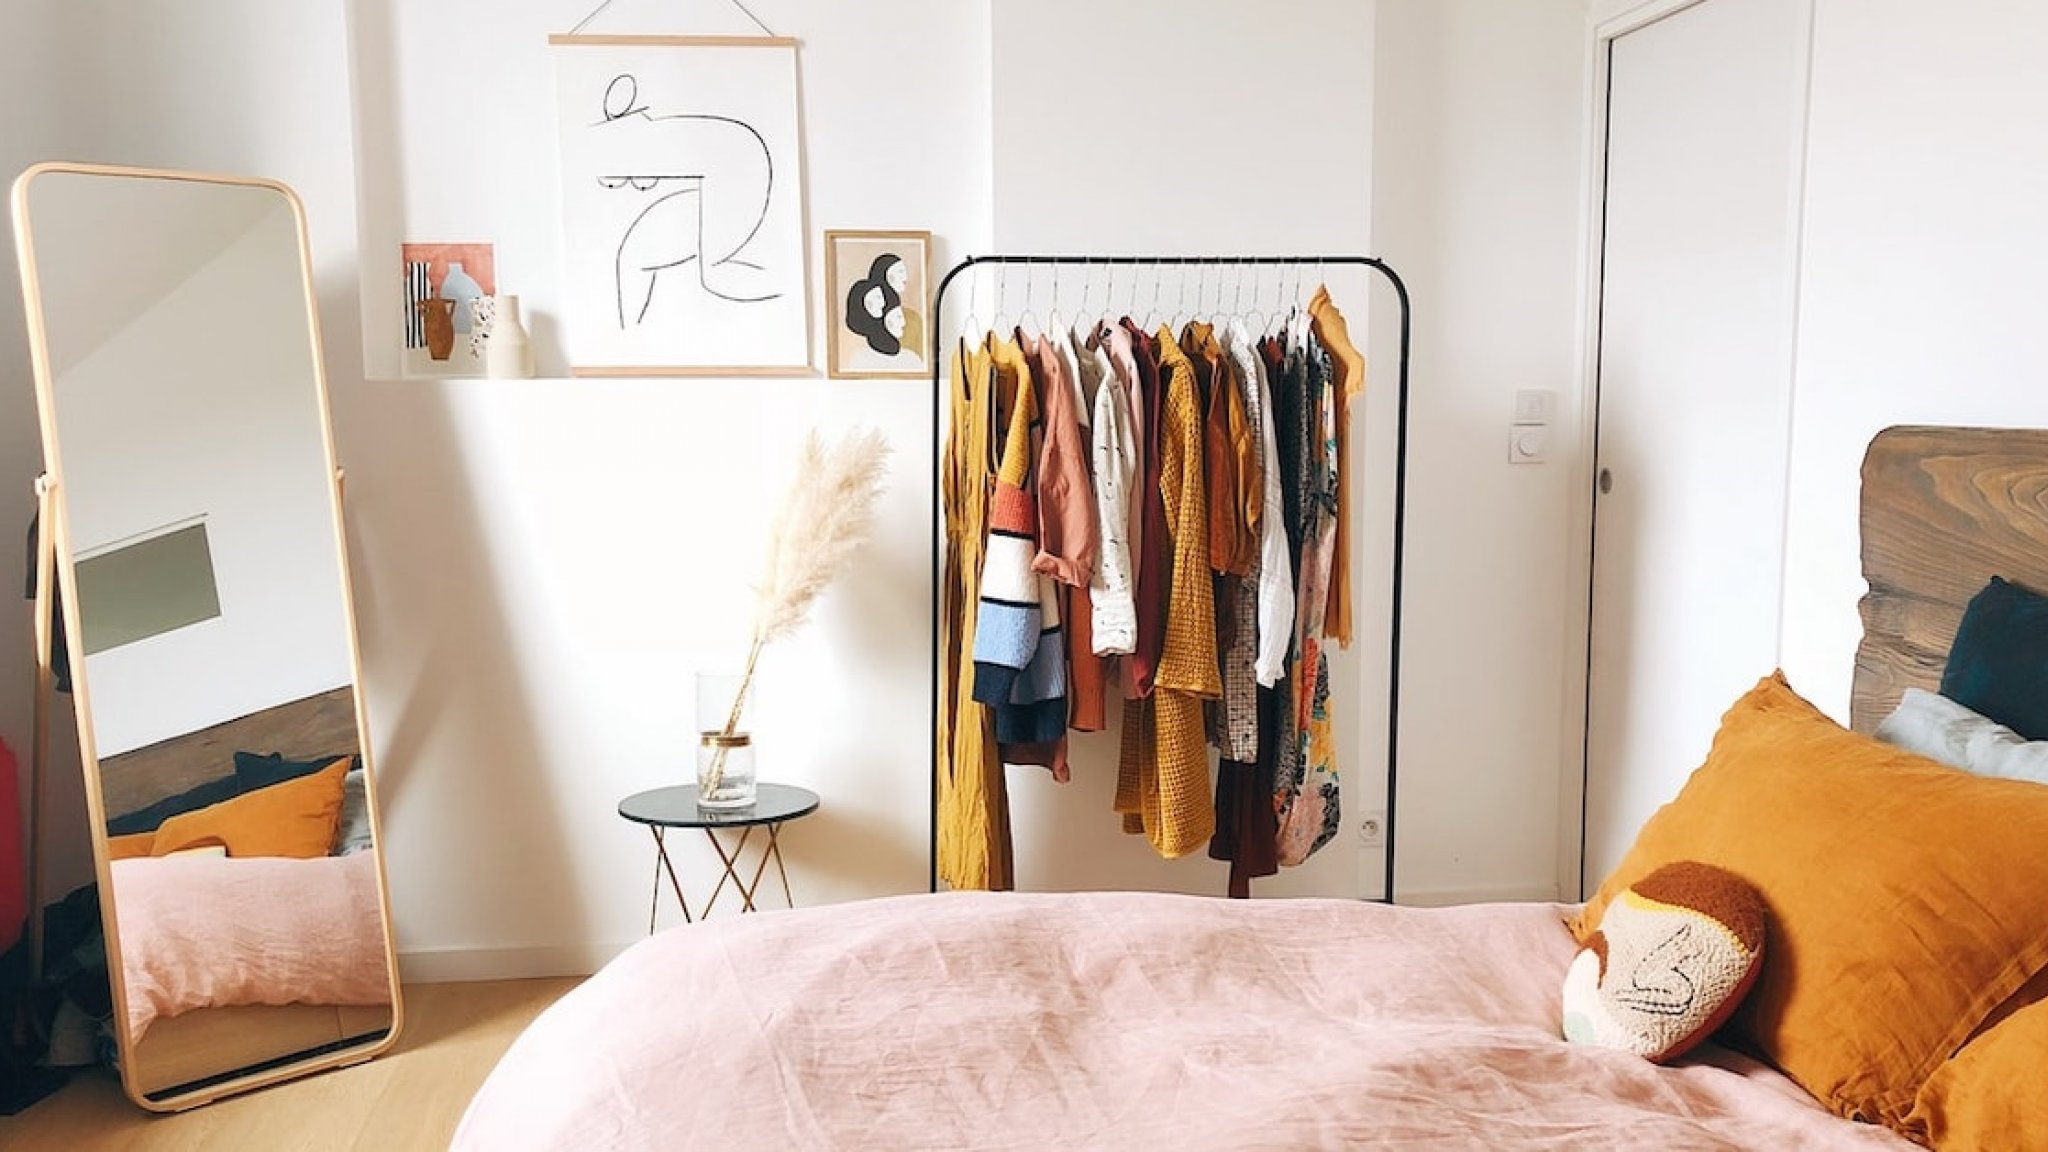 Hang your sweaters in no time and you'll save wardrobe space!